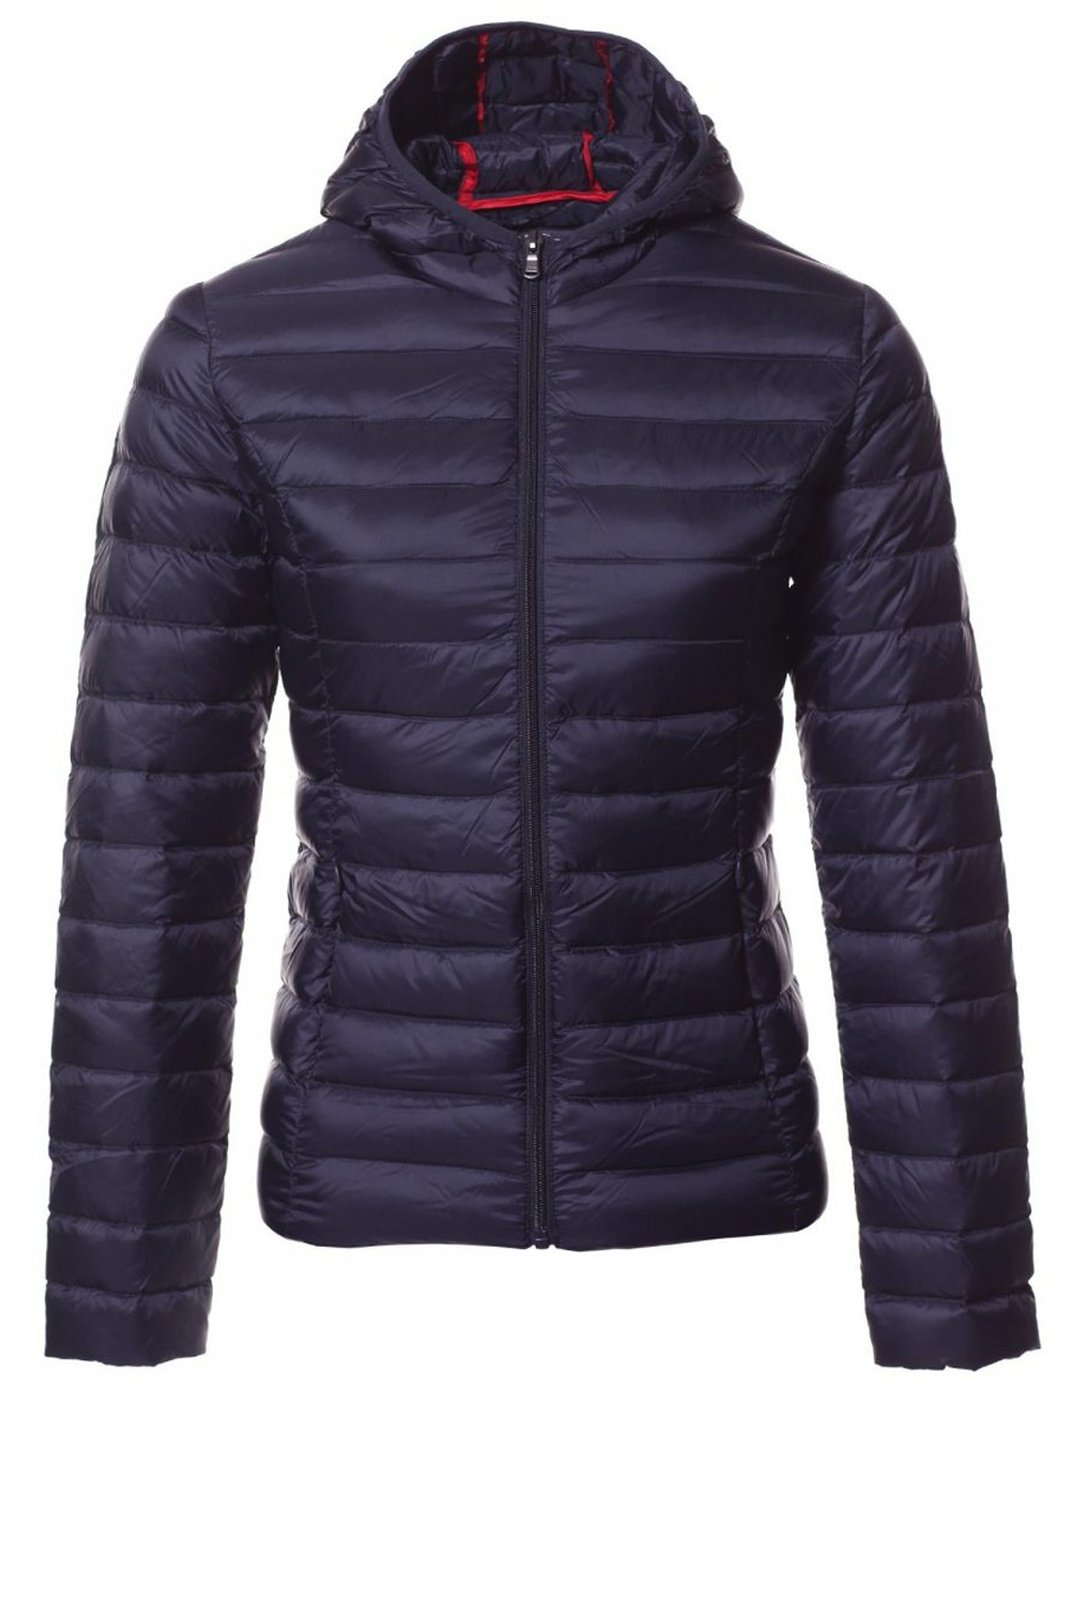 Blouson / doudoune  Just over the top CLOE 104 MARINE